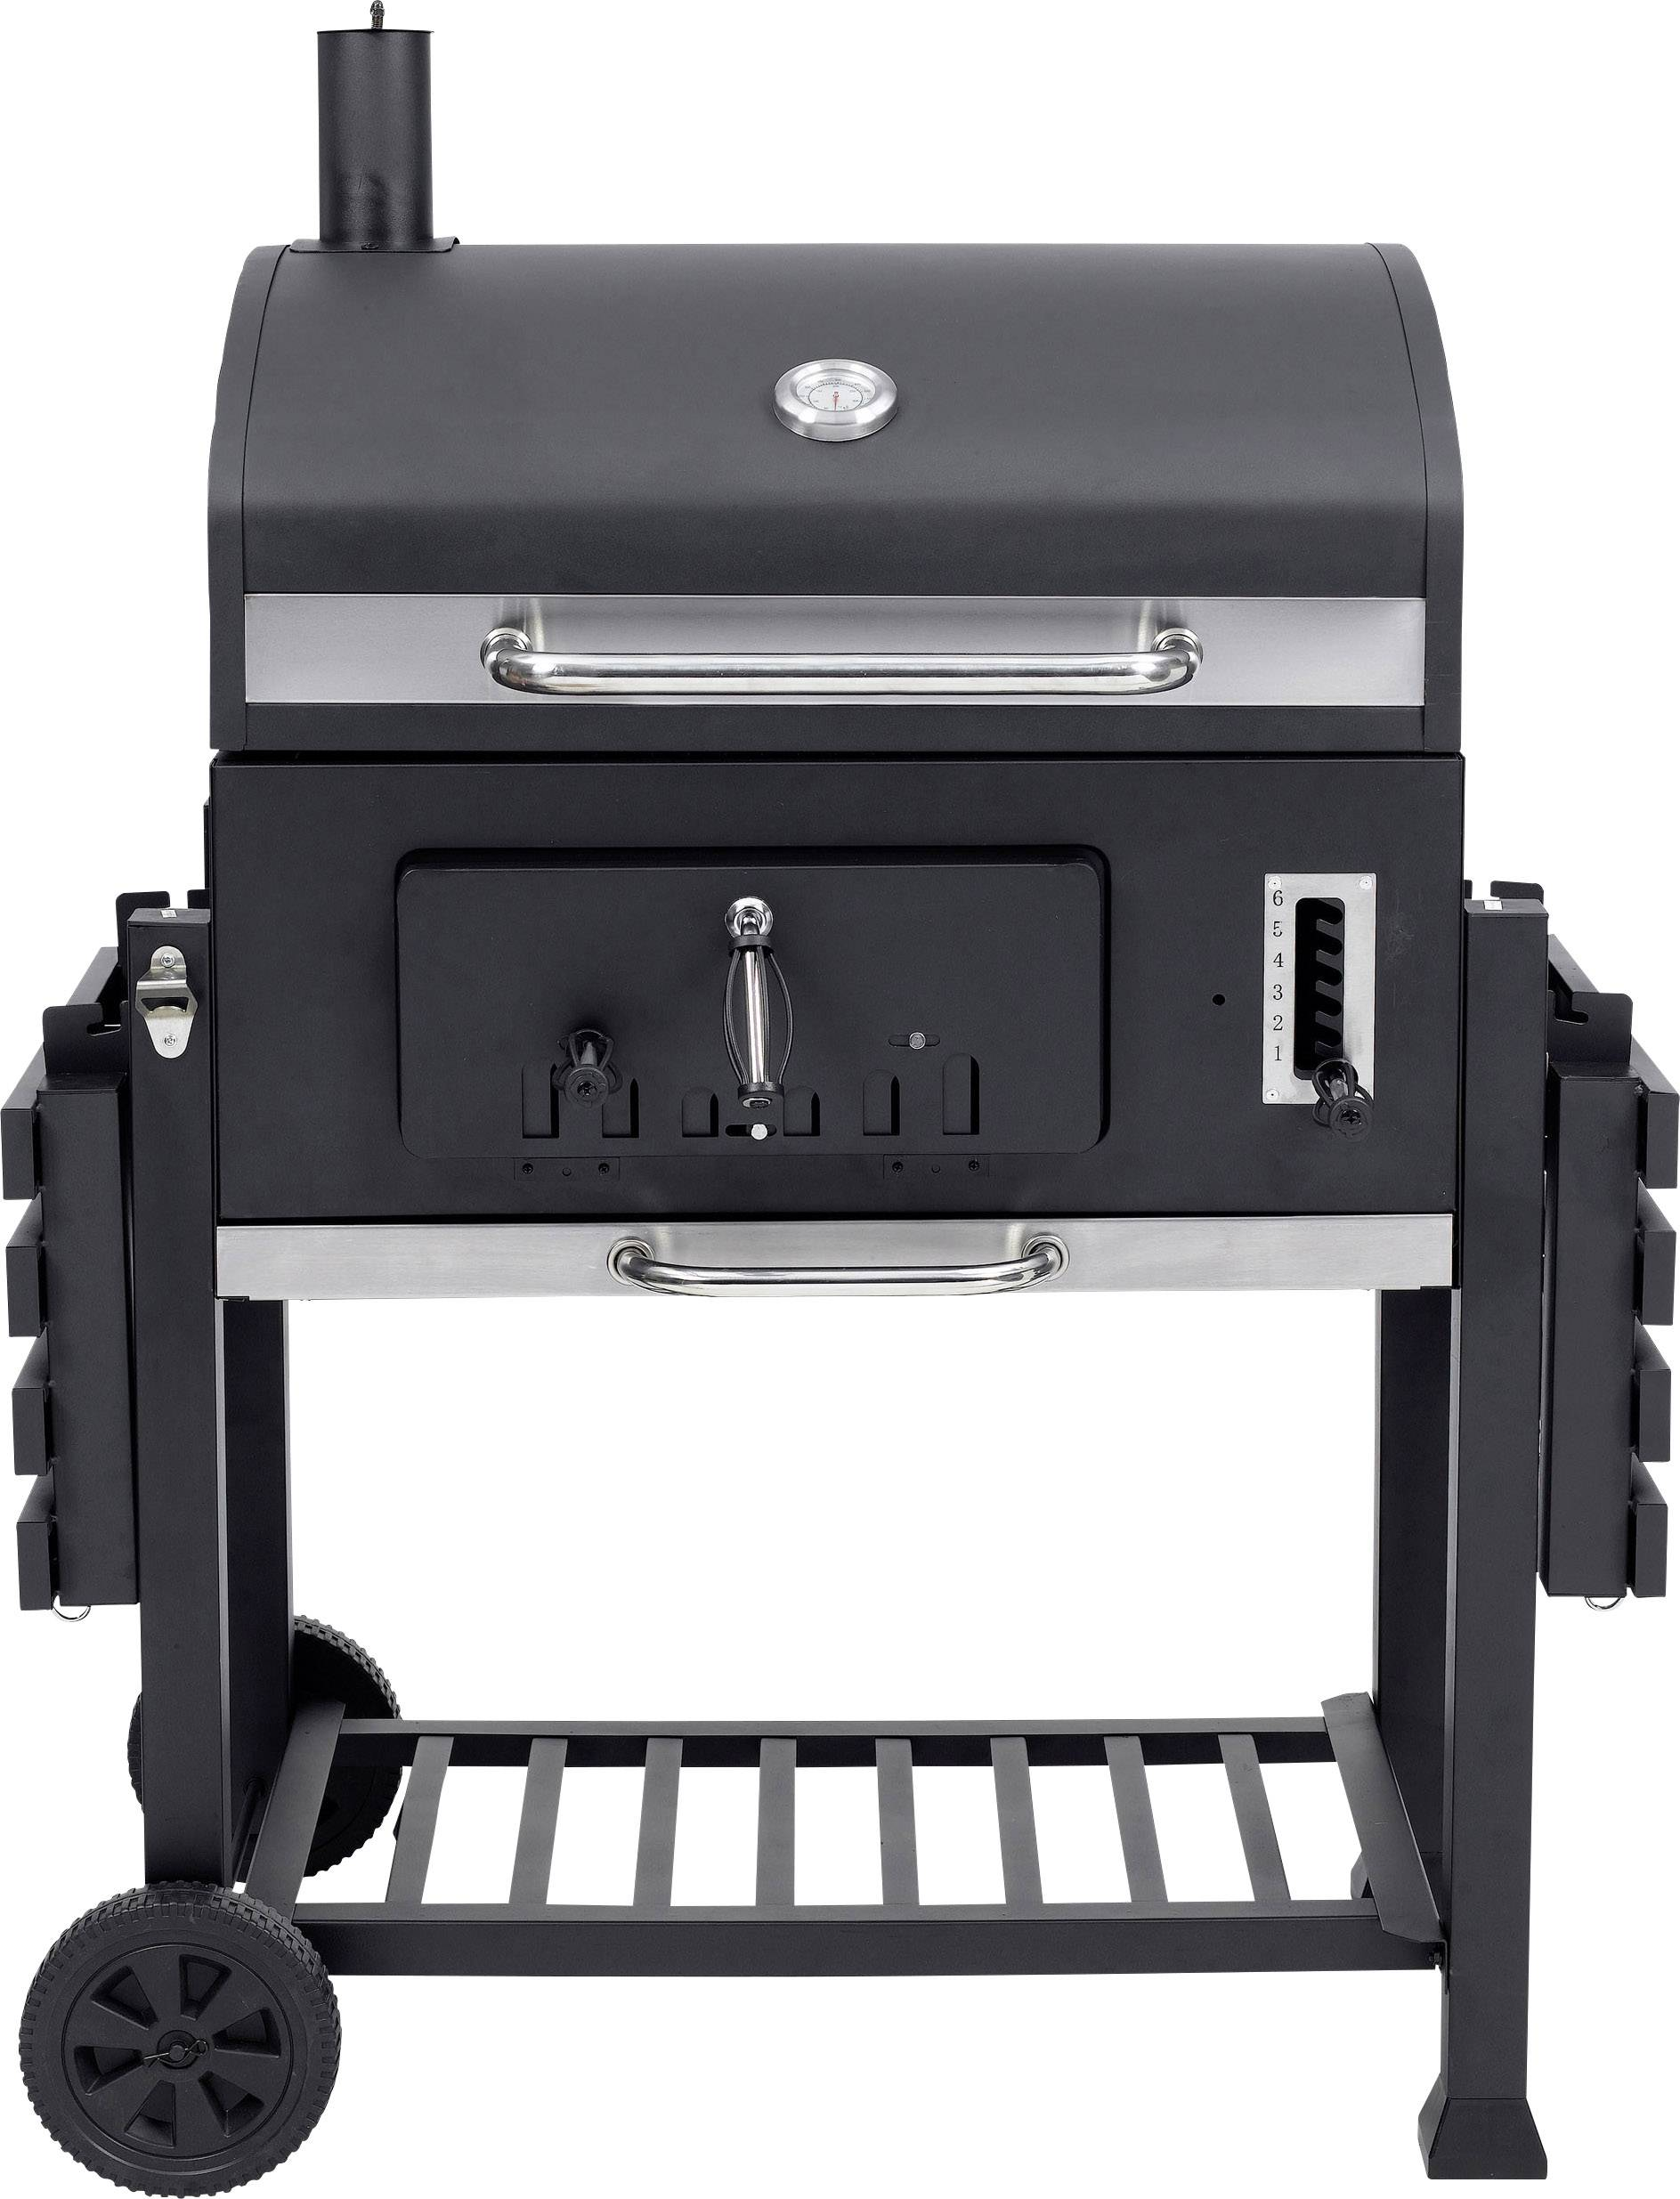 kohle grill top bbq grillwagen grill kohlegrill gartengrill holzkohle xxcm with kohle grill. Black Bedroom Furniture Sets. Home Design Ideas